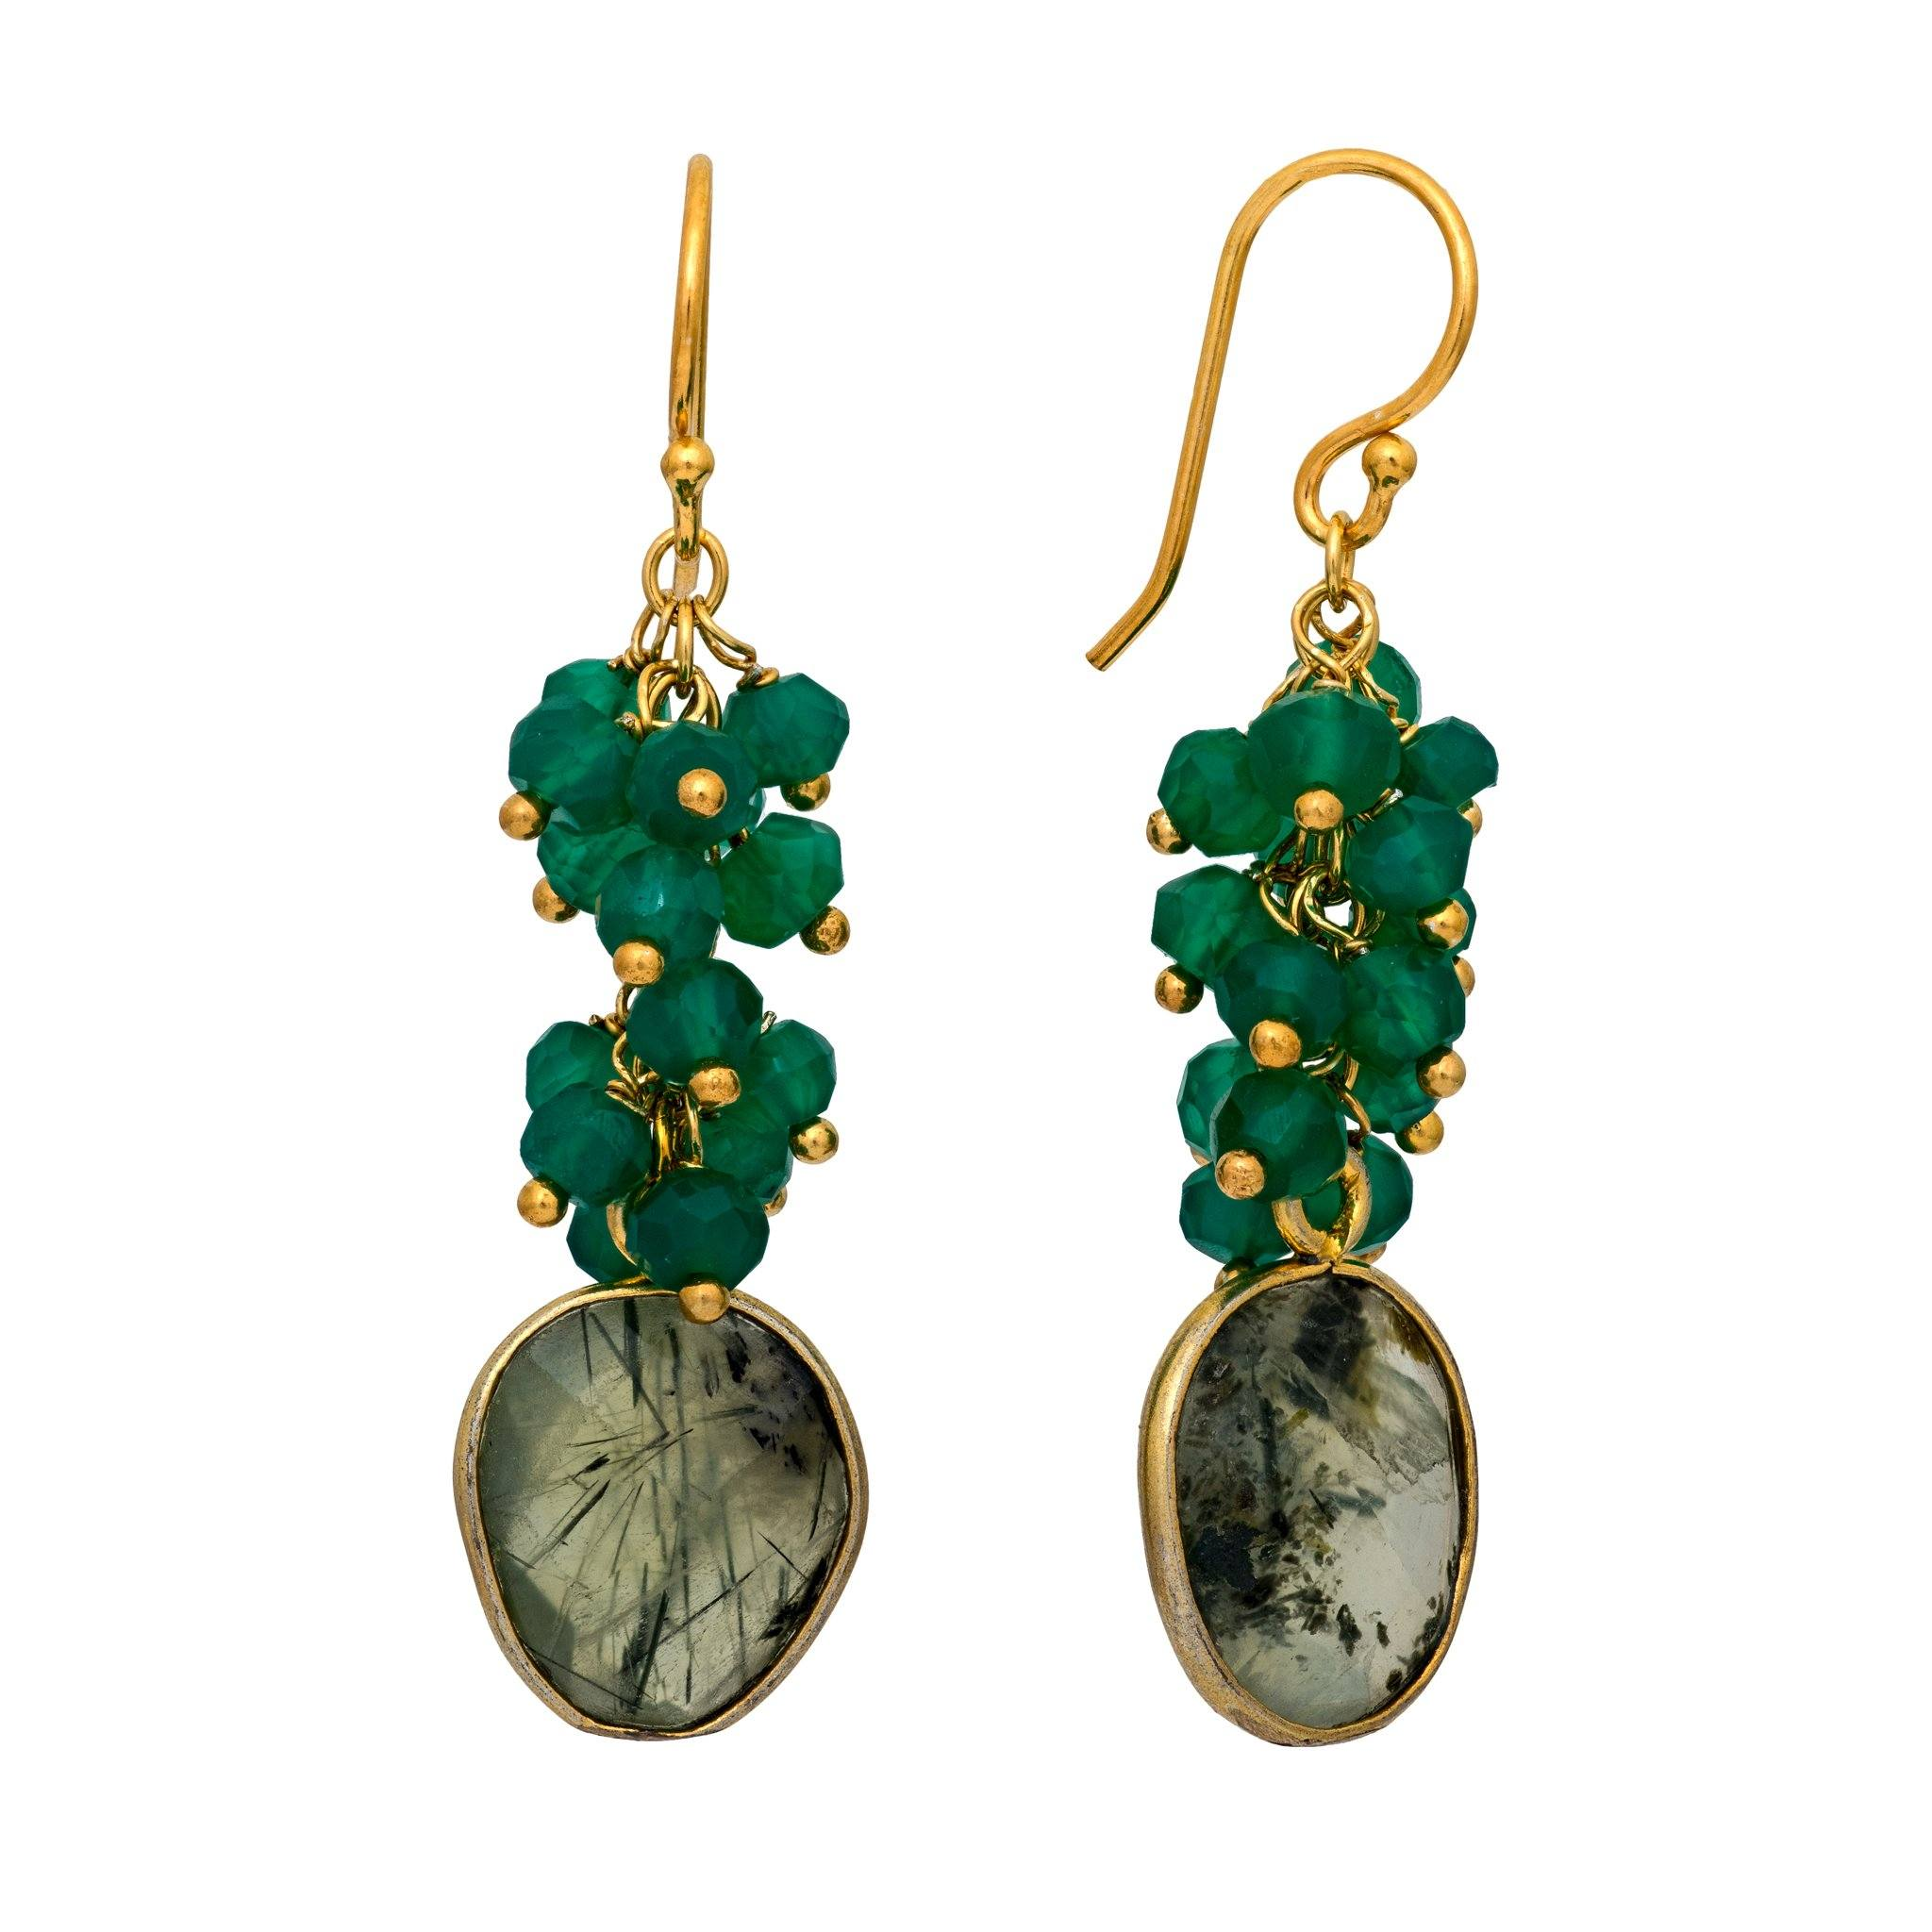 KAI green onyx cluster earrings - MadamSiam